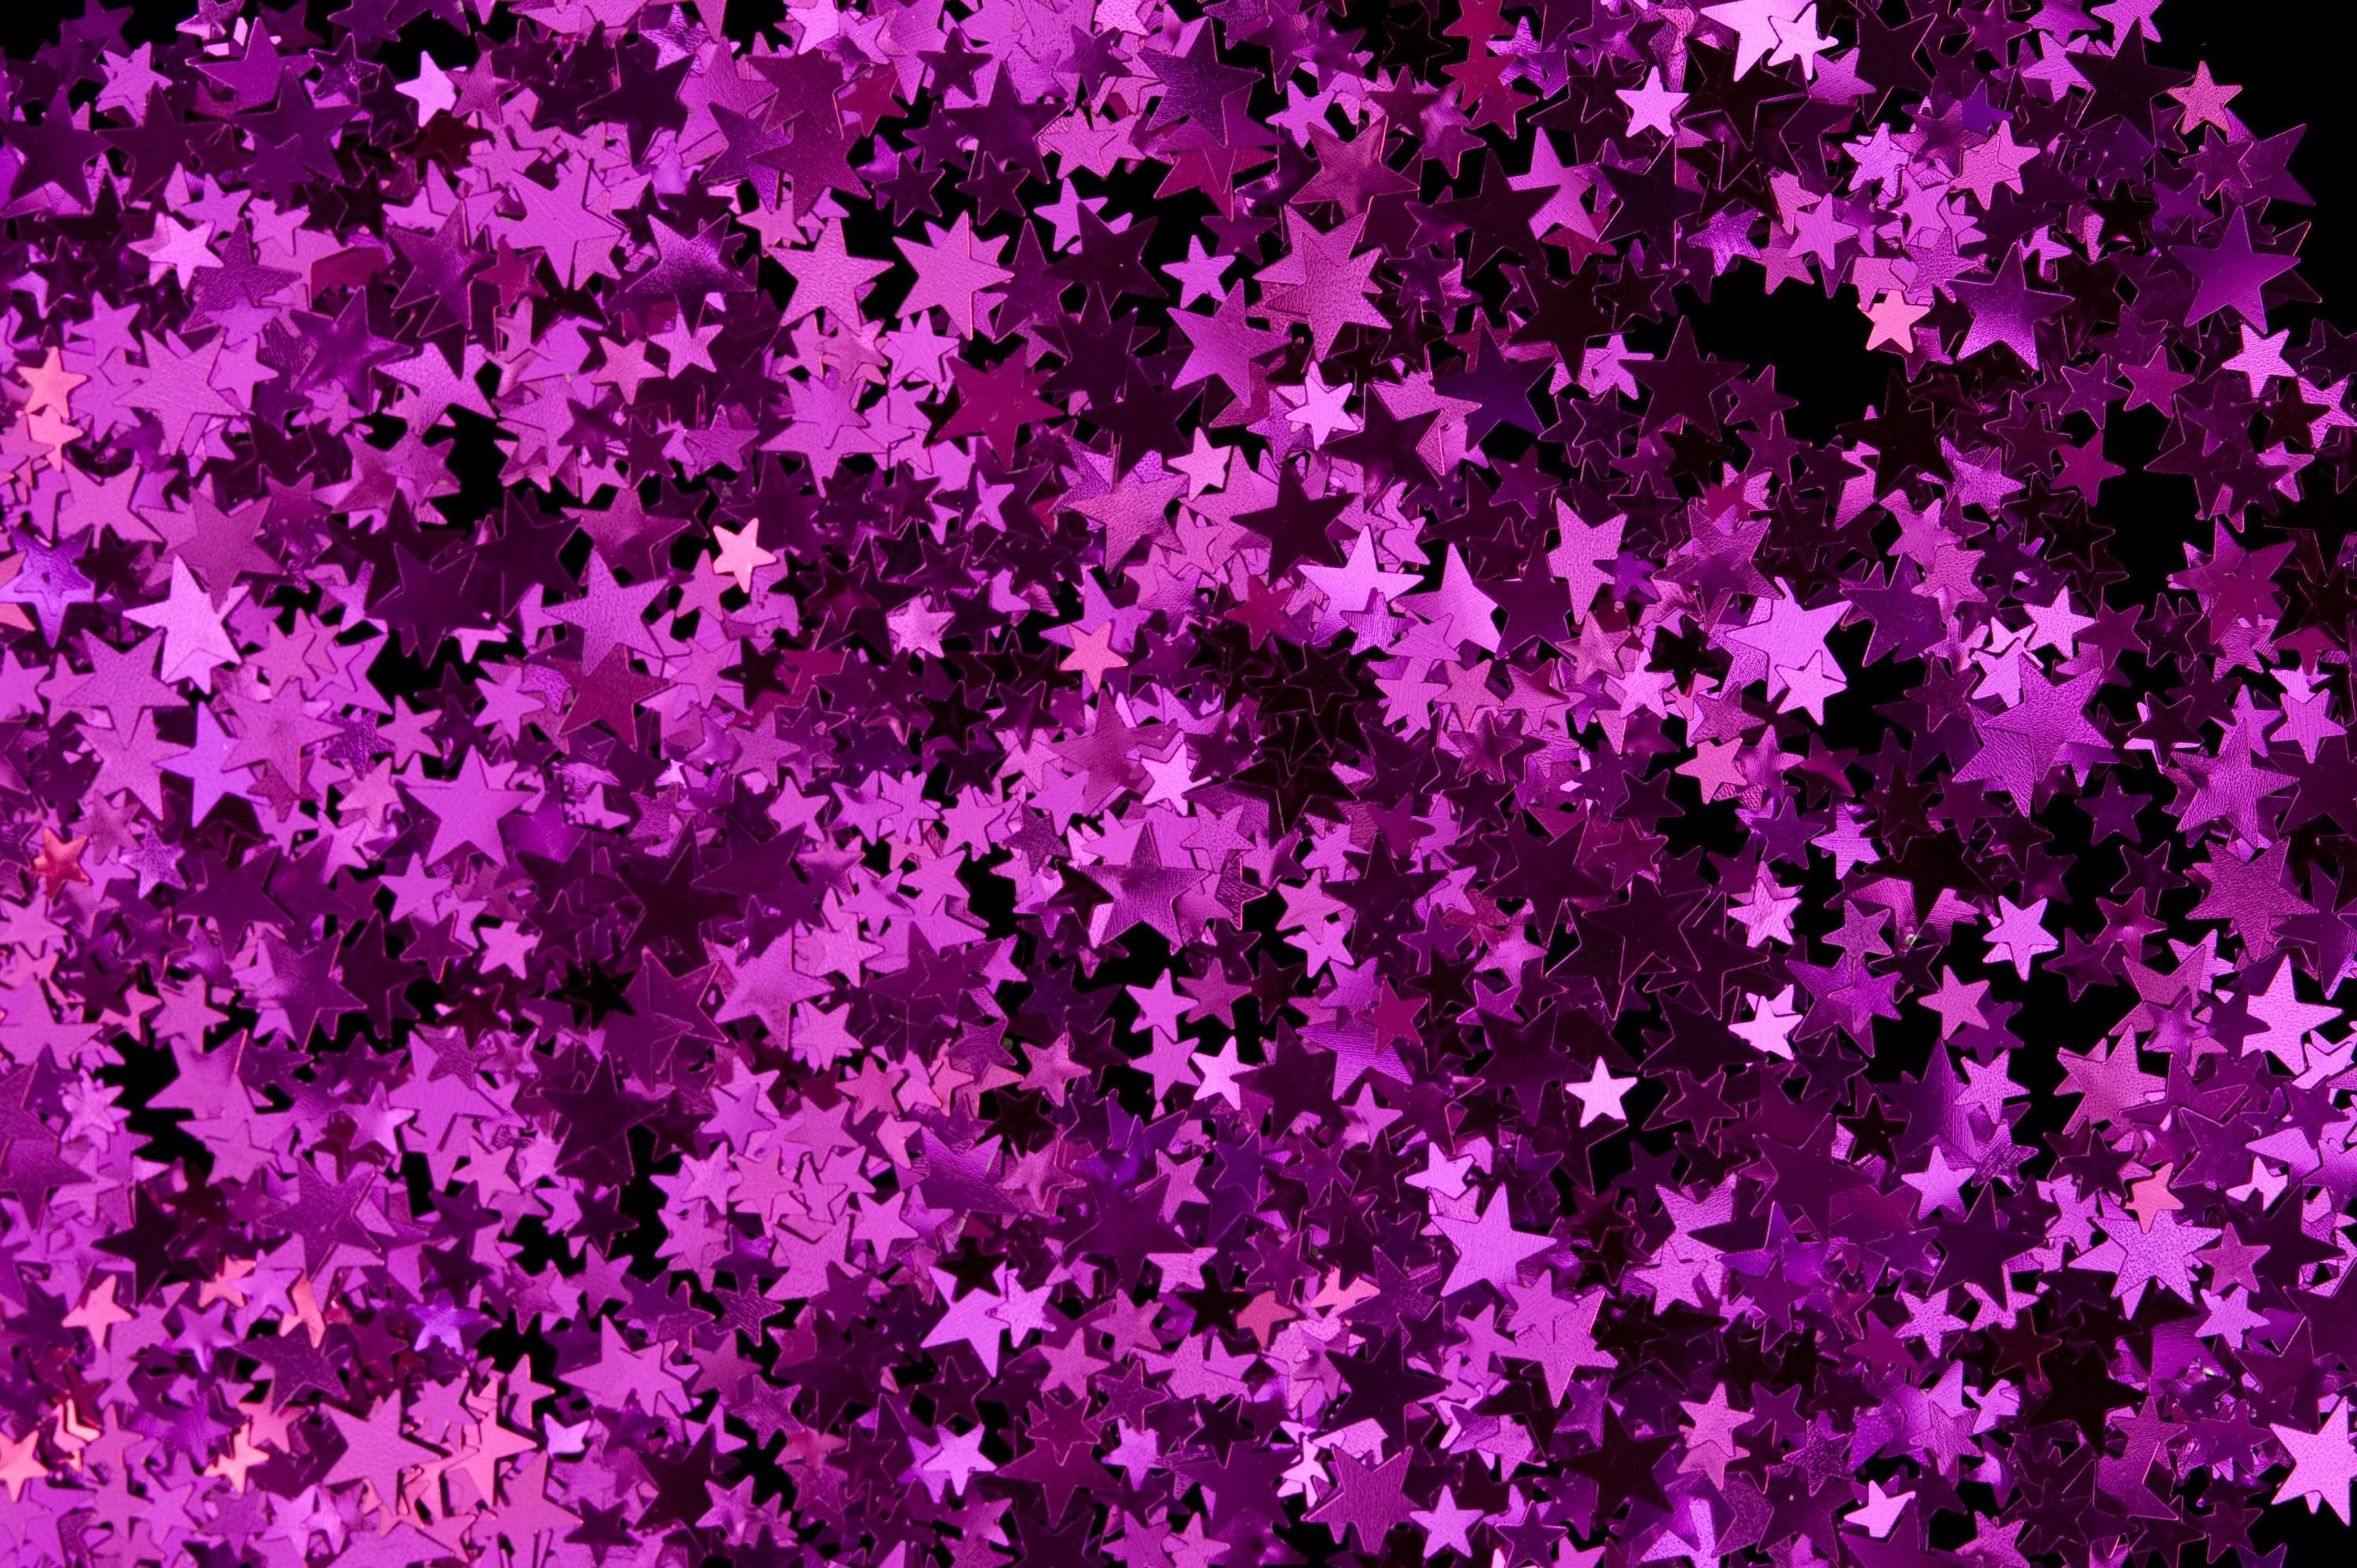 3000x1996 Colorful Glitter Background Images & Pictures - Becuo